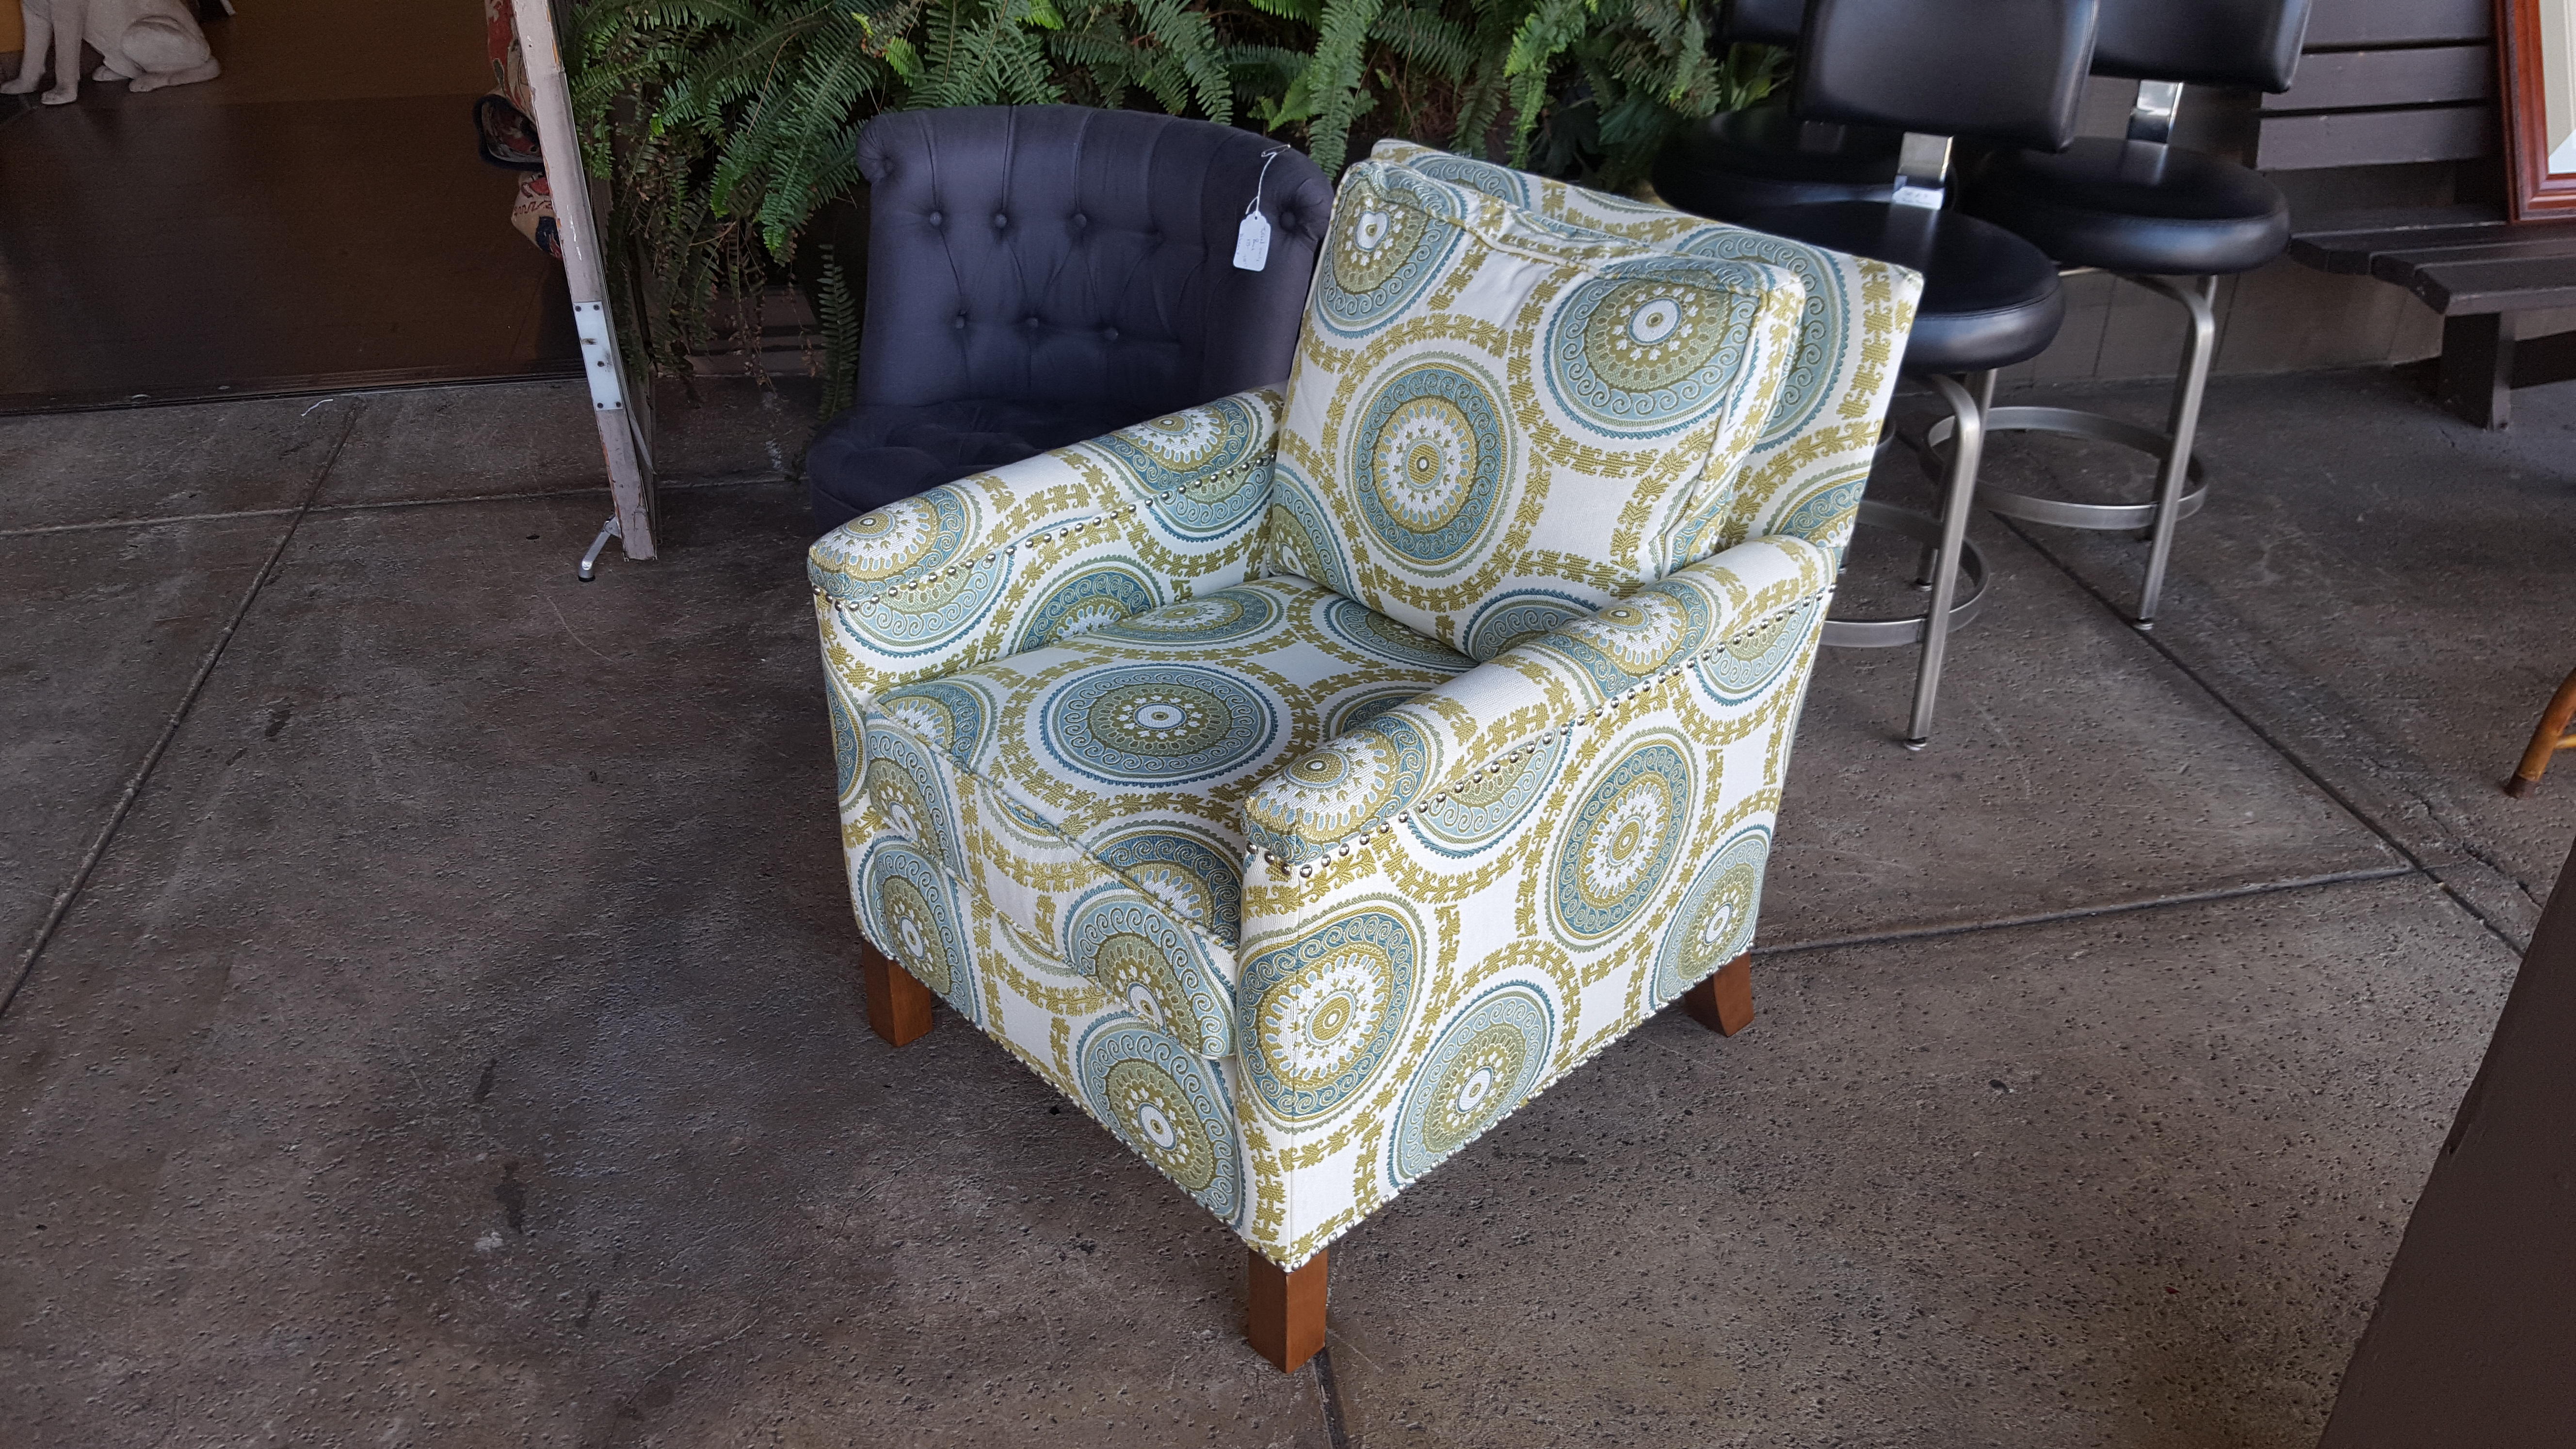 Stunning upholstered Blue, gold and Chairs, Benches, Stools Call for price